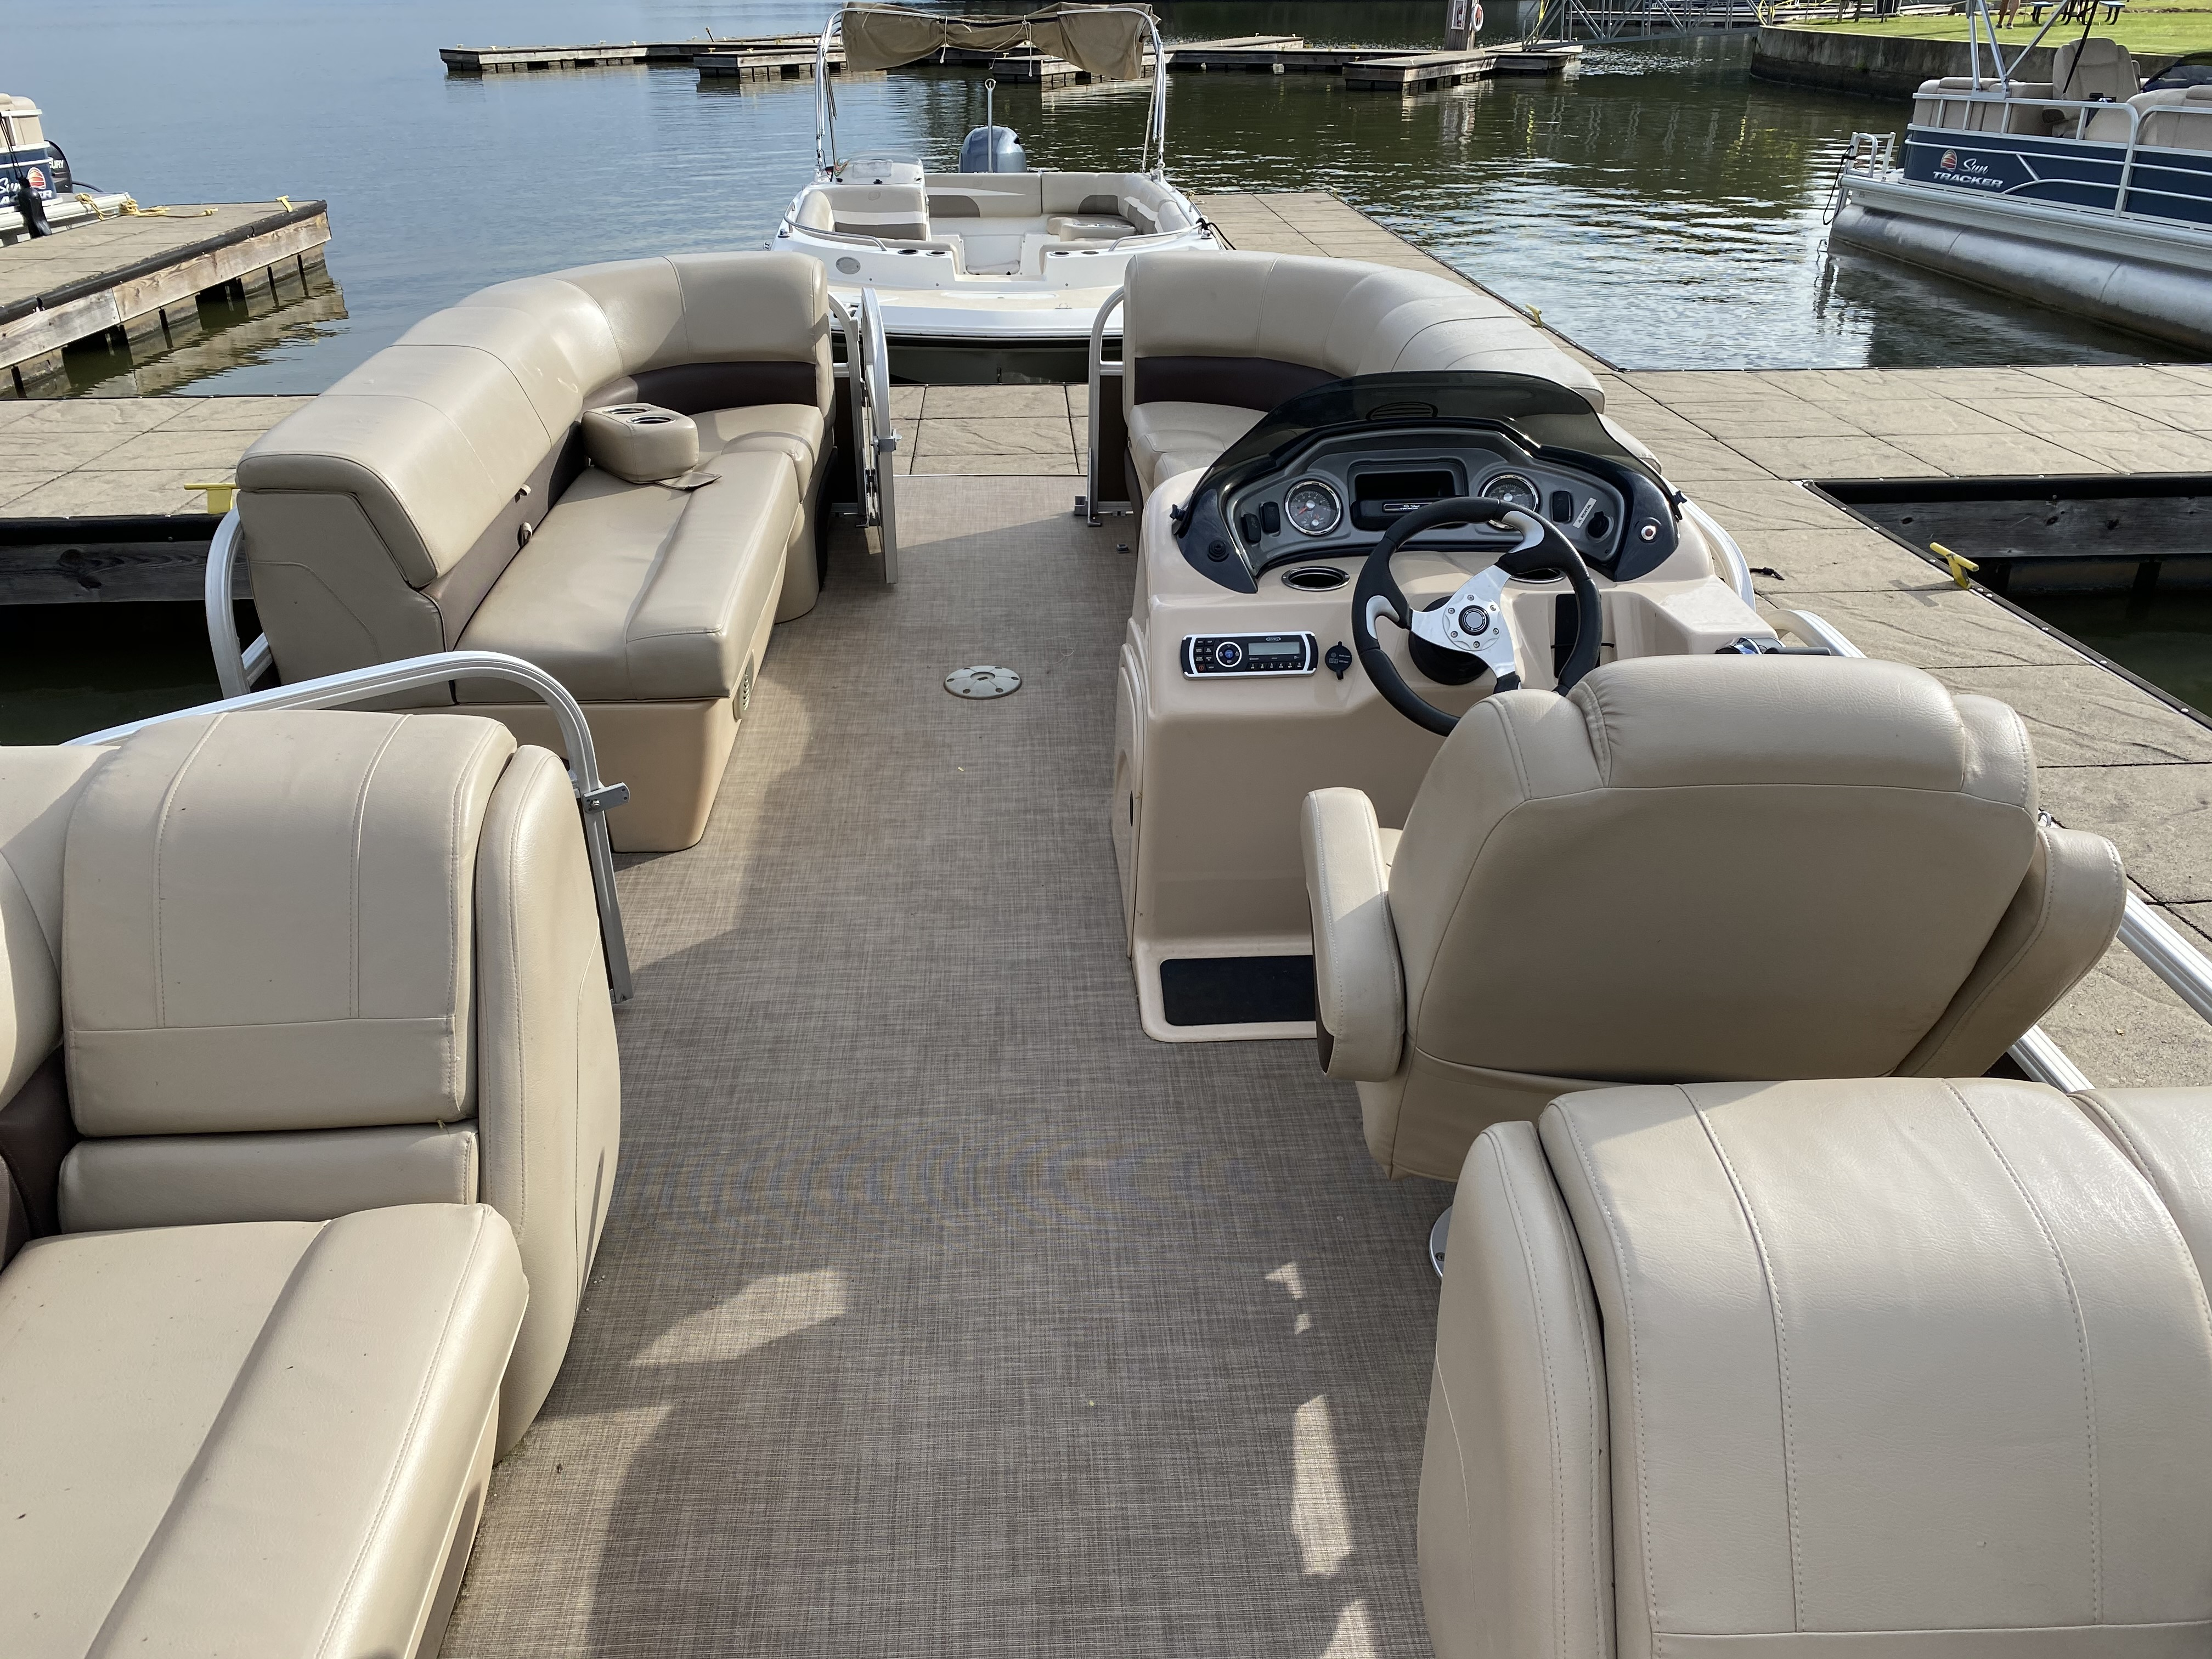 2019 Sun Tracker boat for sale, model of the boat is PARTY BARGE 22 w/ Mercury 115Hp 4S & Image # 12 of 22